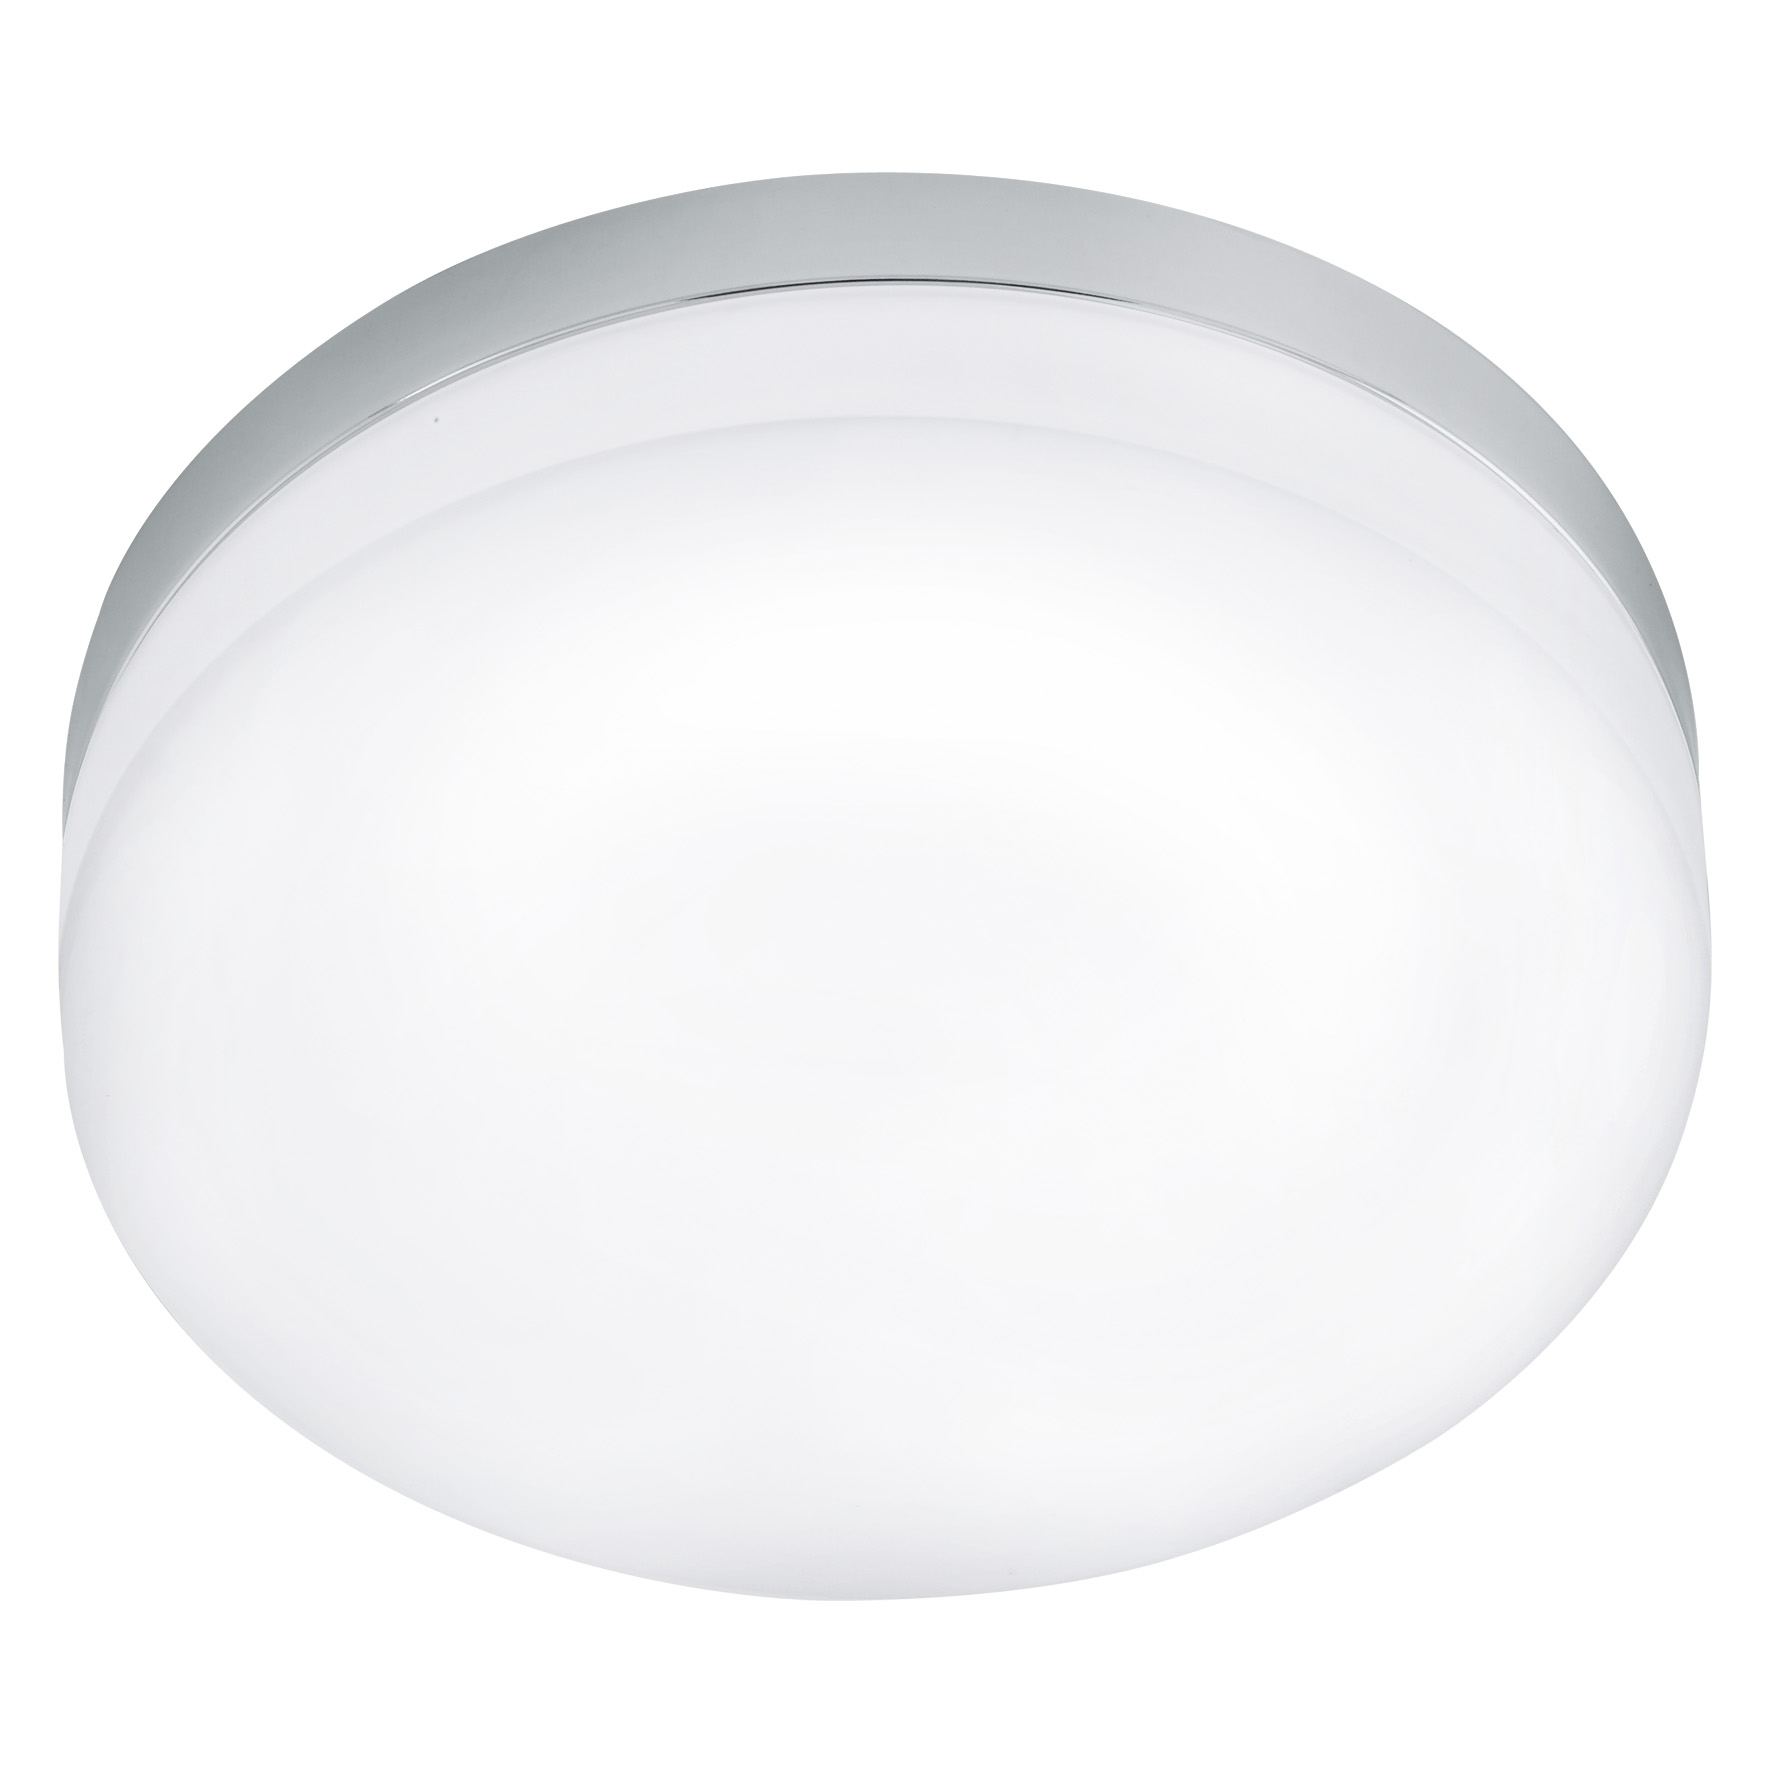 Led Ceiling Lights For Bathroom : Adventages of led bathroom lights ceiling warisan